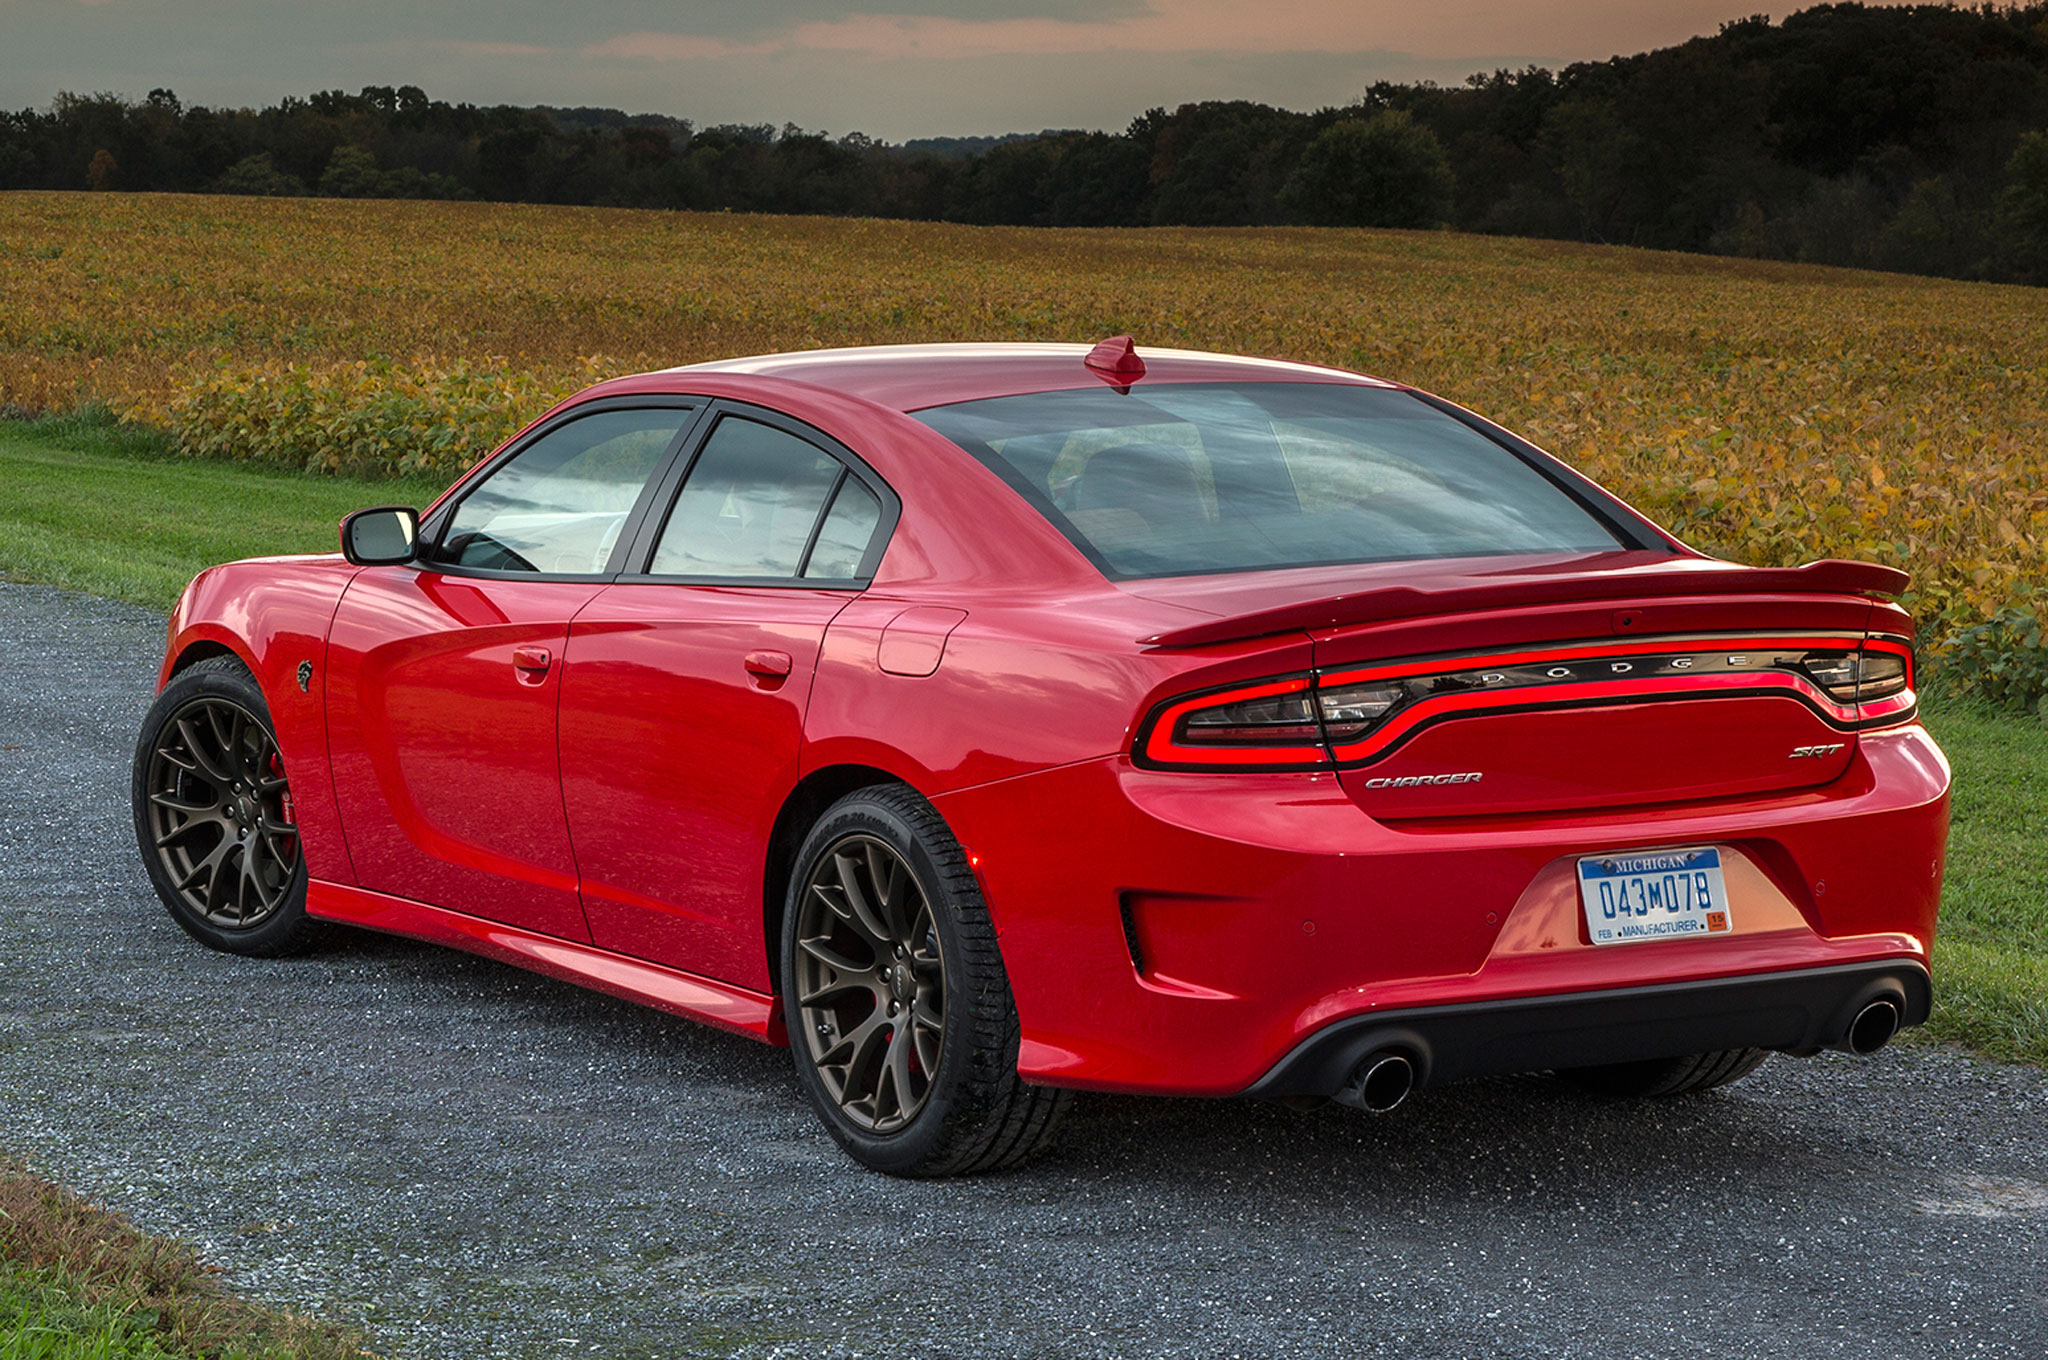 2015 Dodge Charger SRT Hellcat Review